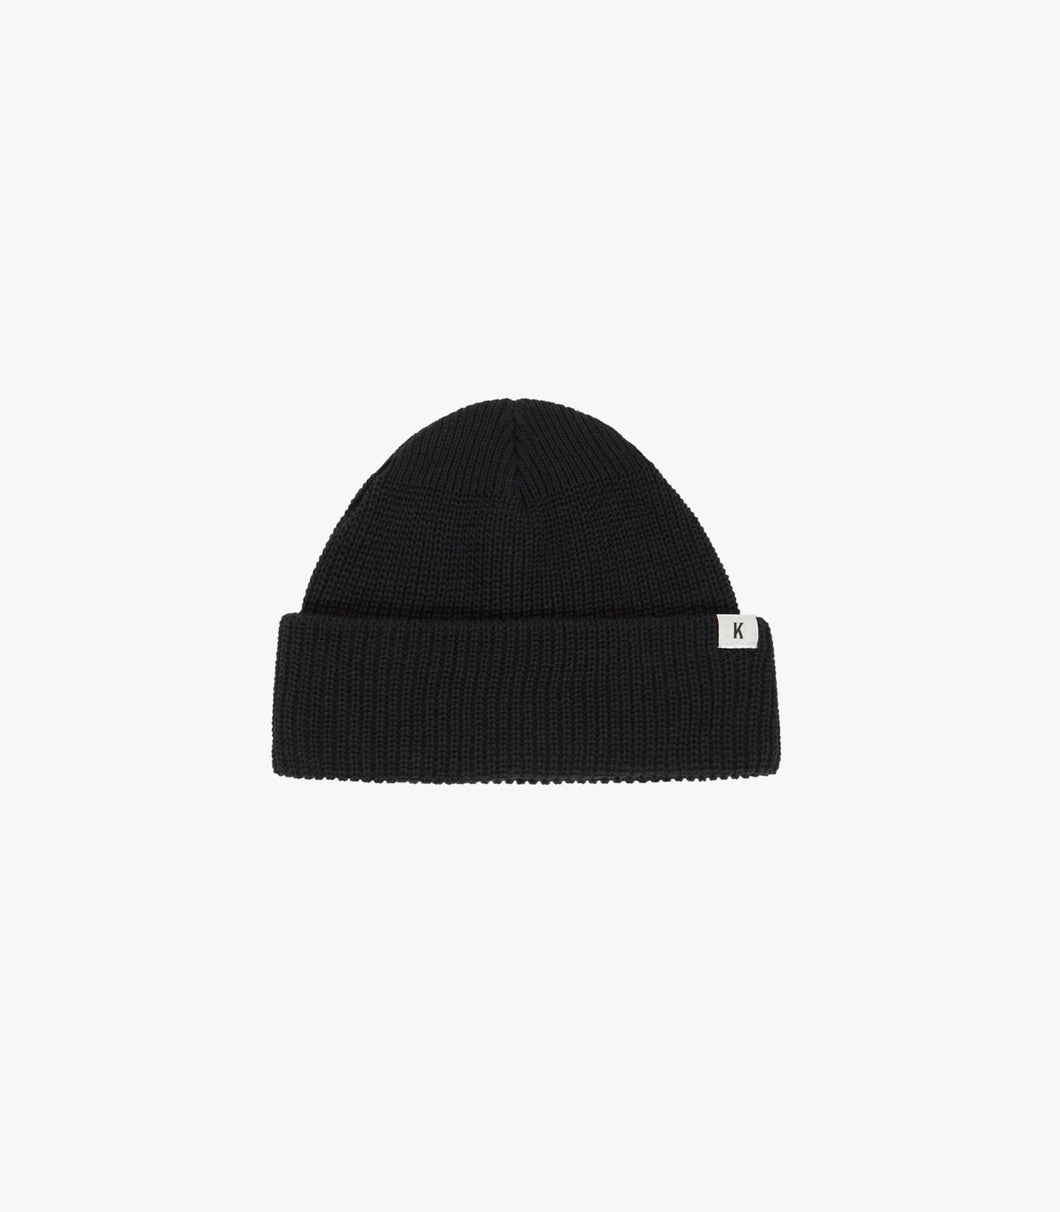 Knickerbocker -  Watch Cap II - Black